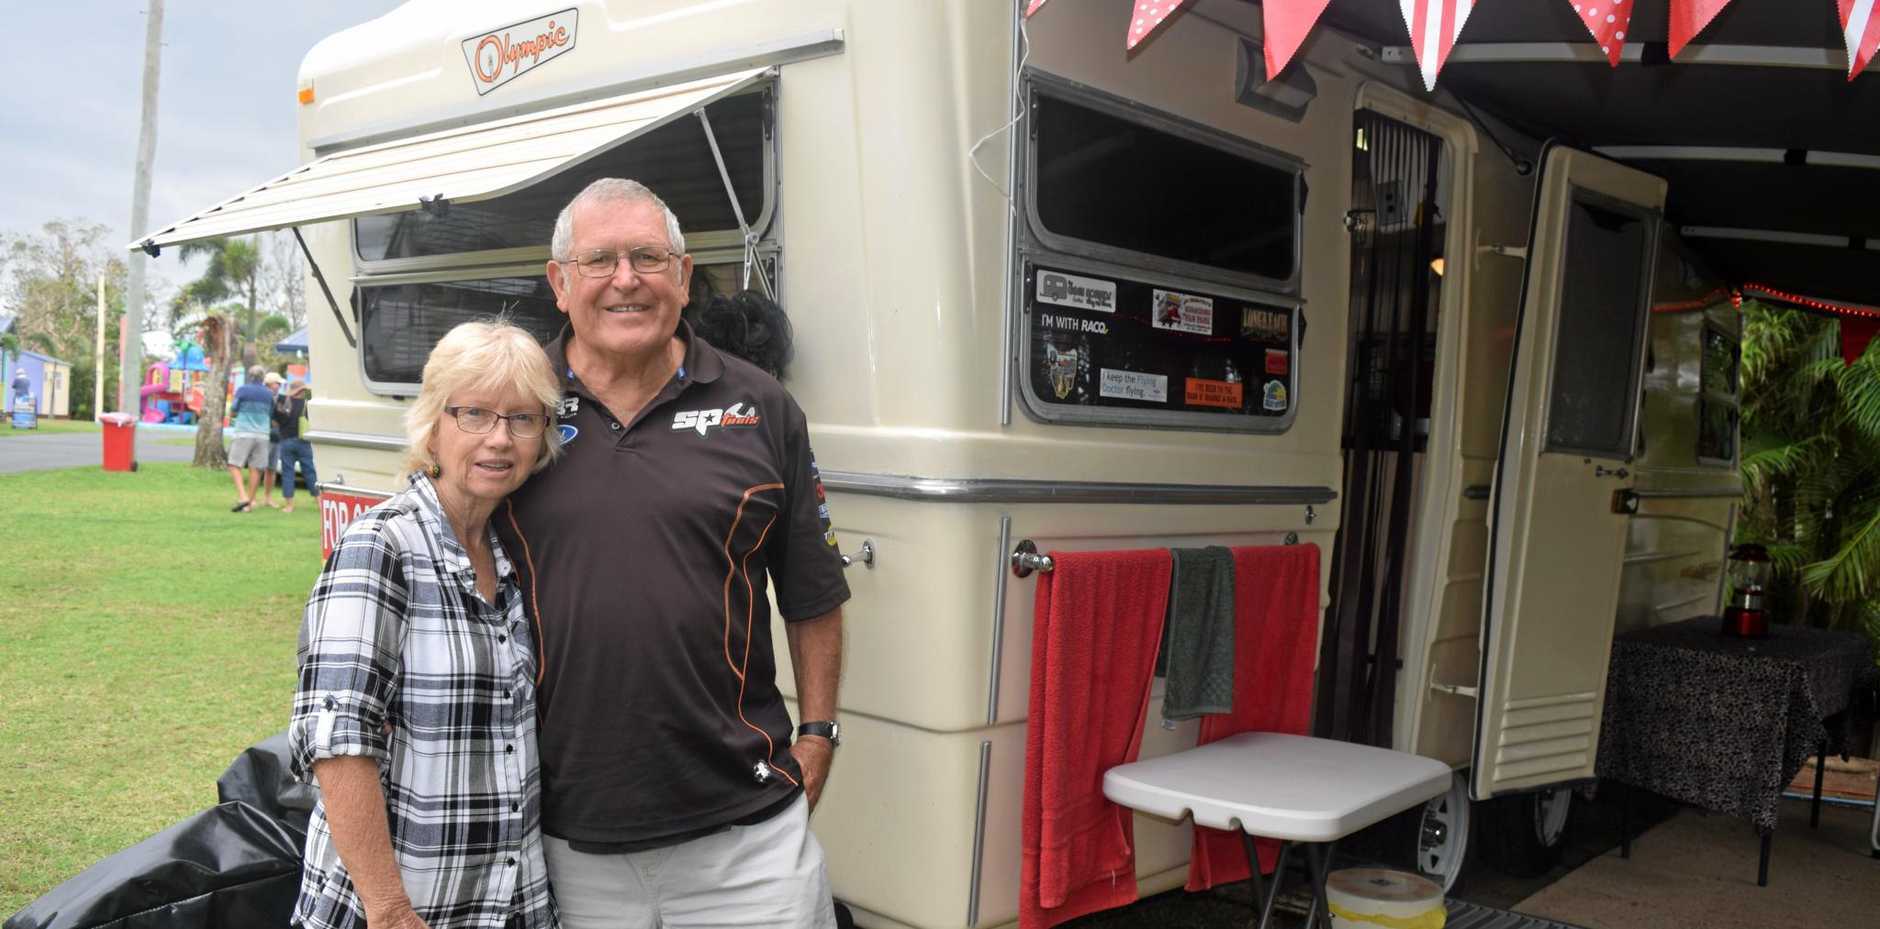 PRIDE AND JOY: Violet and Steven Kirk stand outside their 1978 Olympic Stardust caravan.